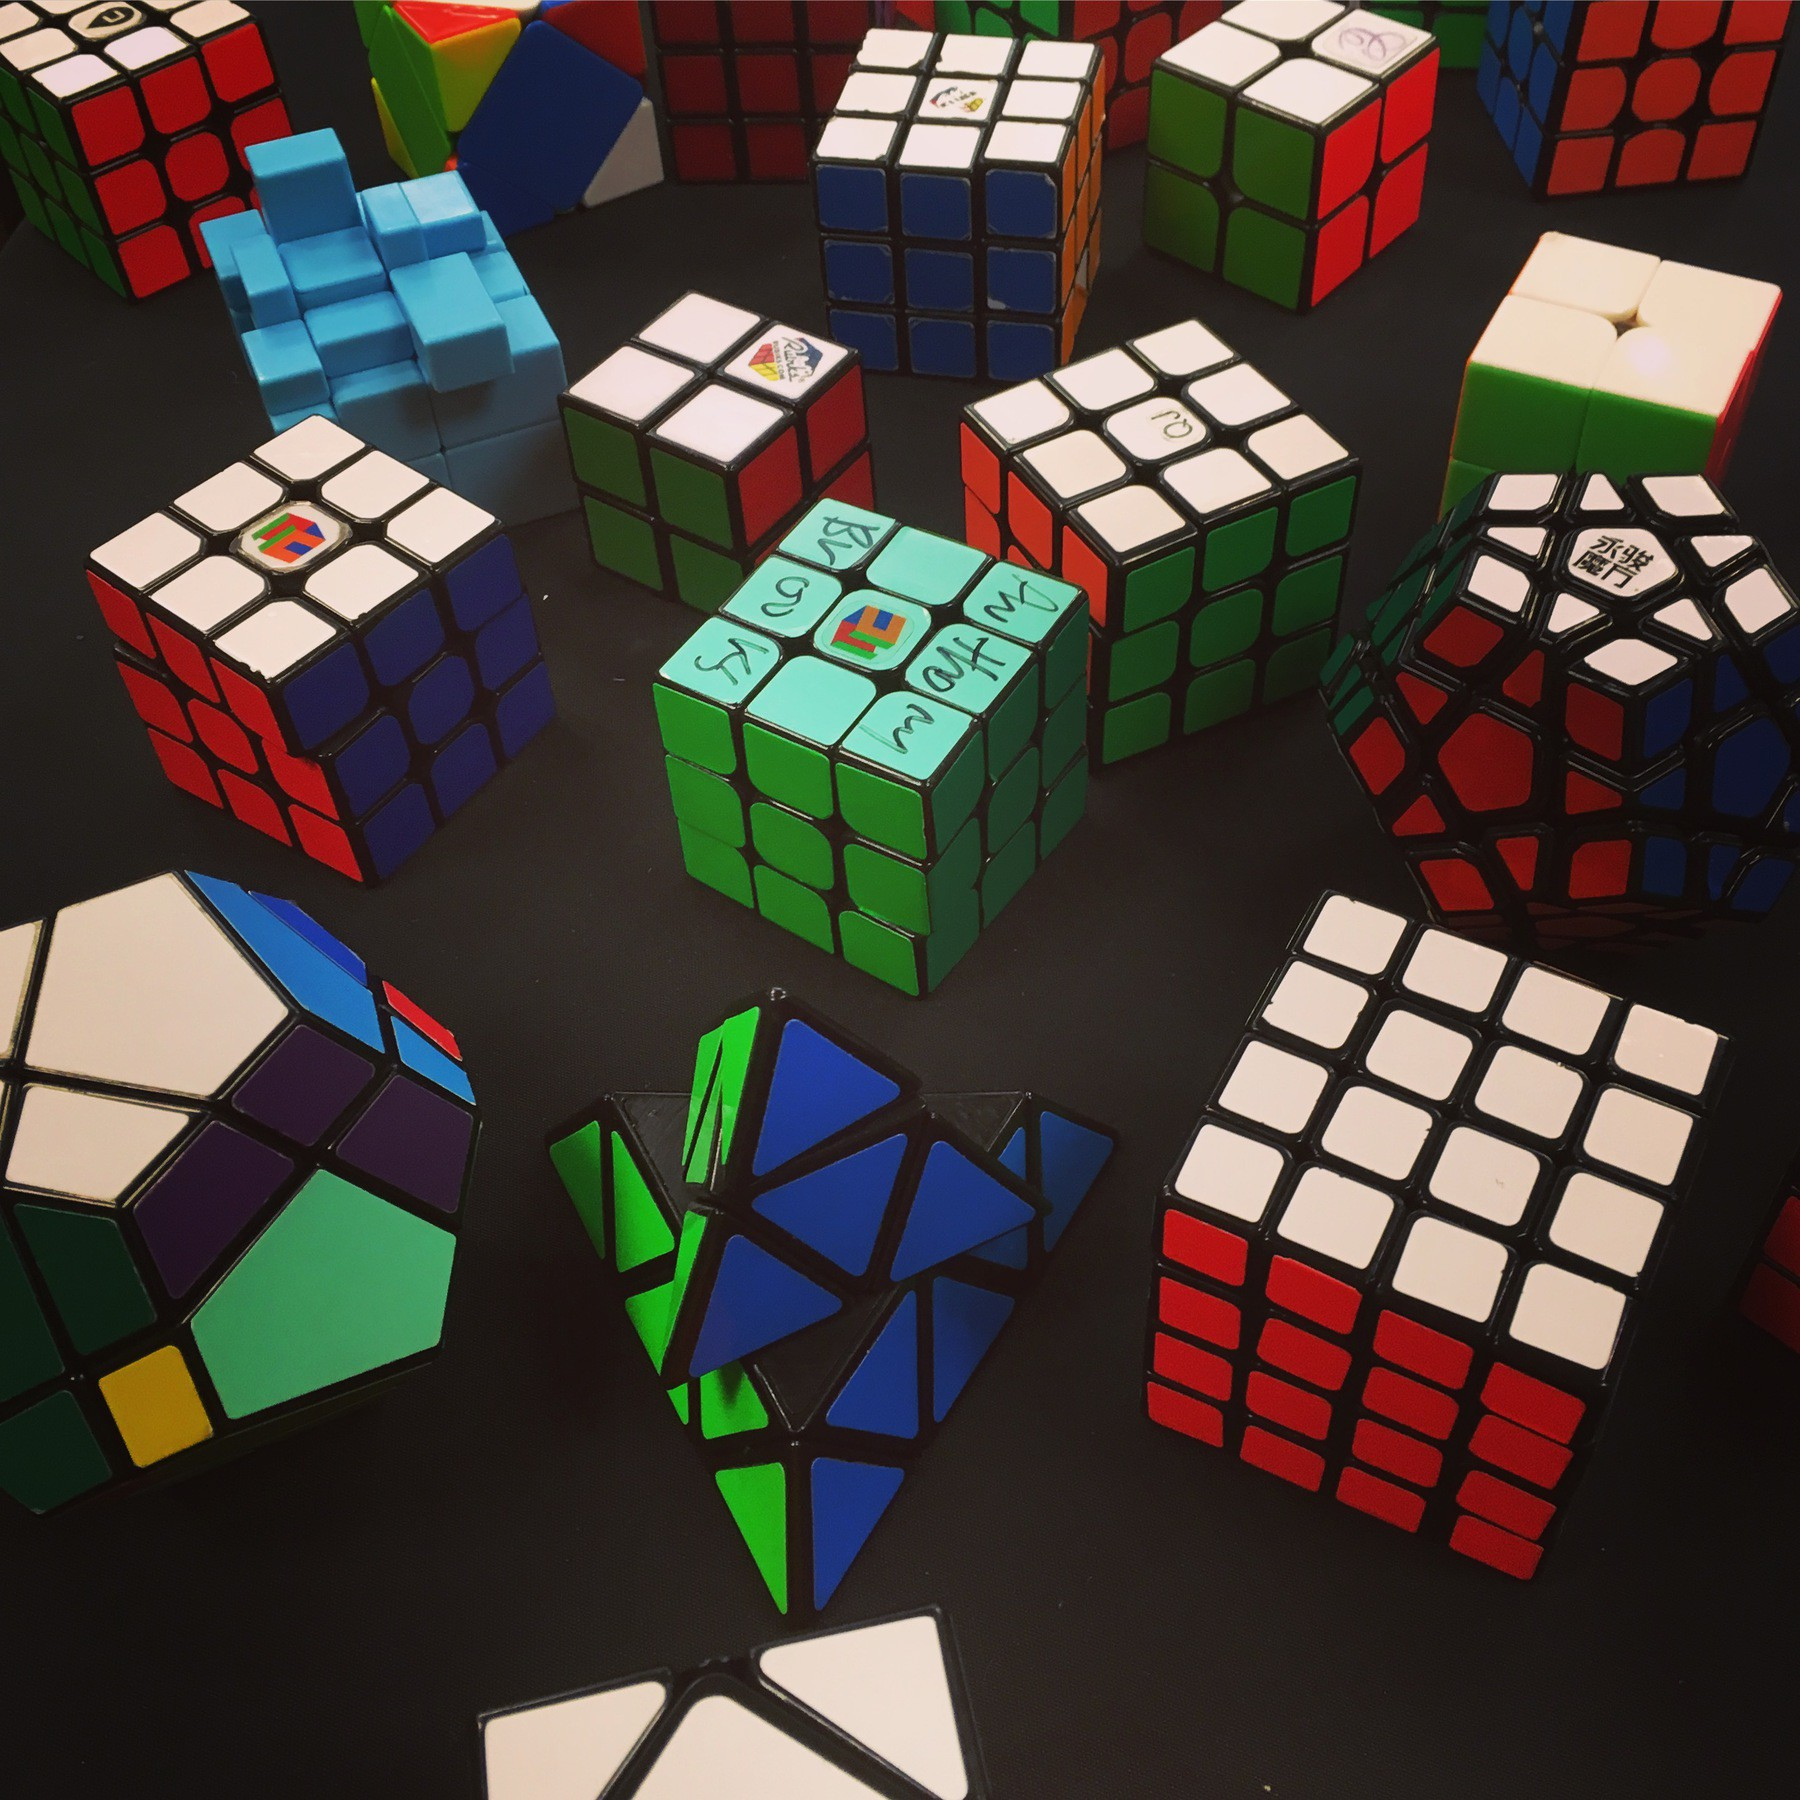 Table of cubes